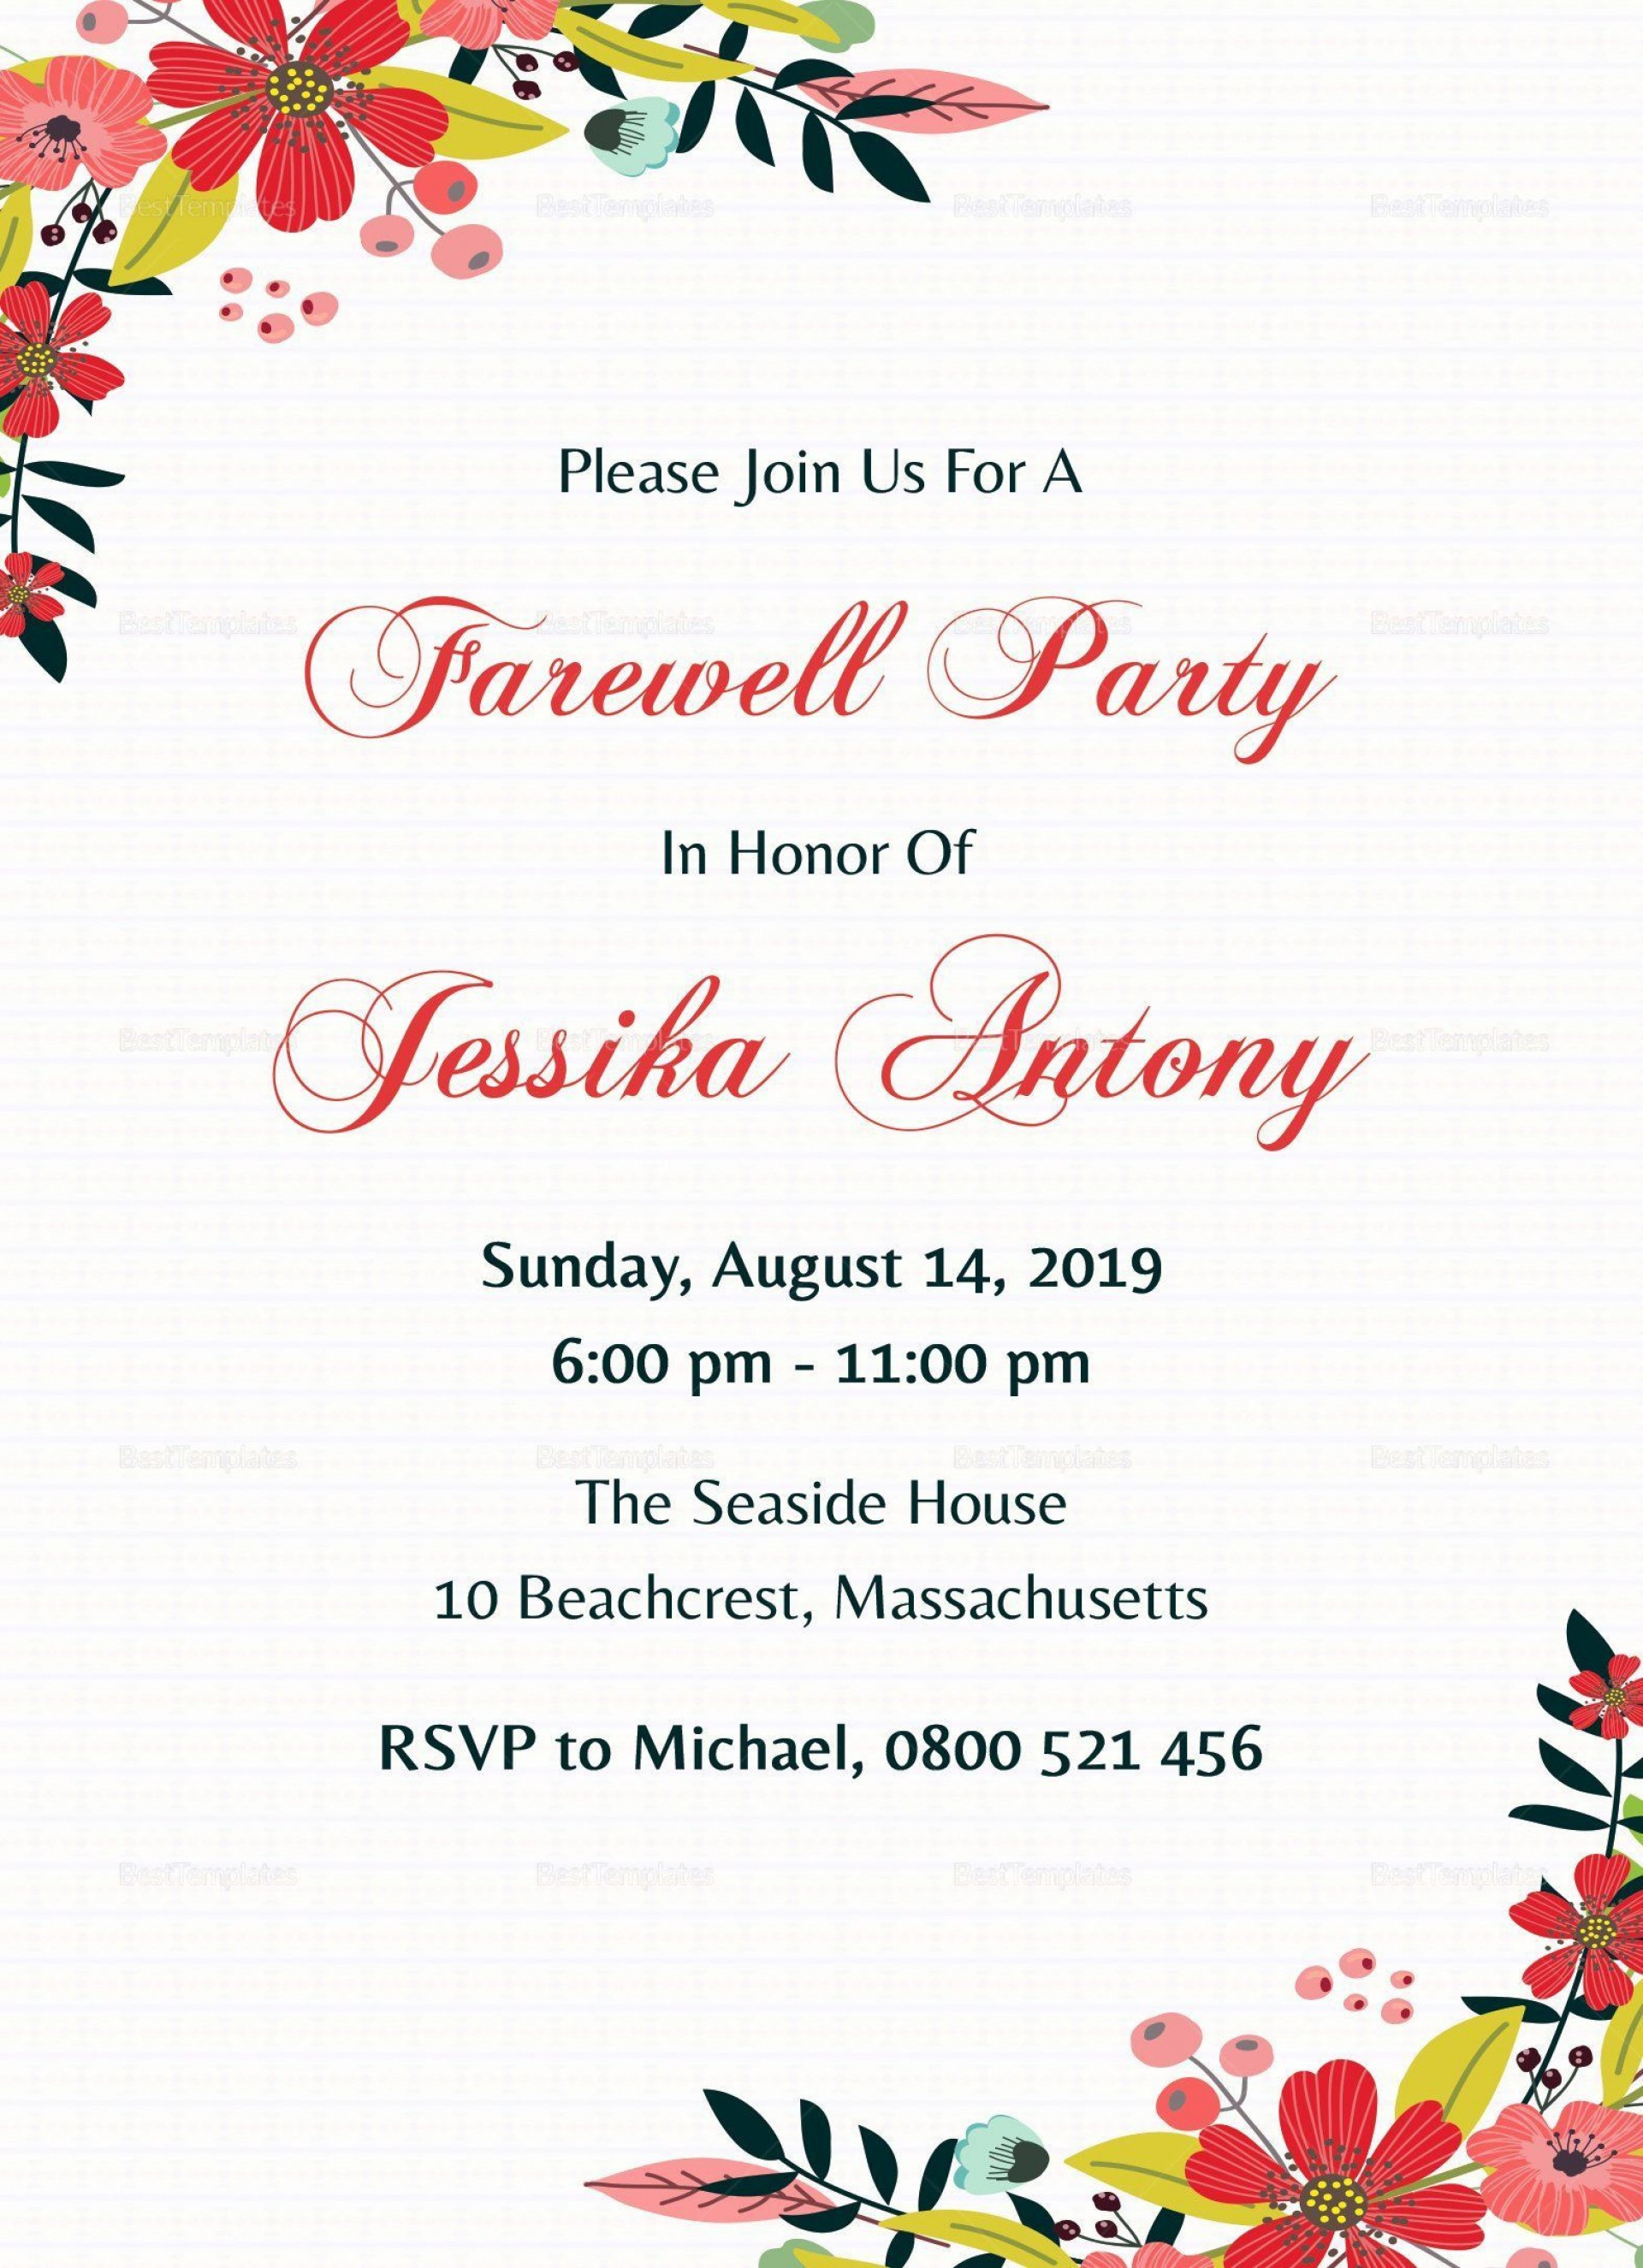 001 Excellent Farewell Party Invitation Template Free Photo  Email Printable Word1920